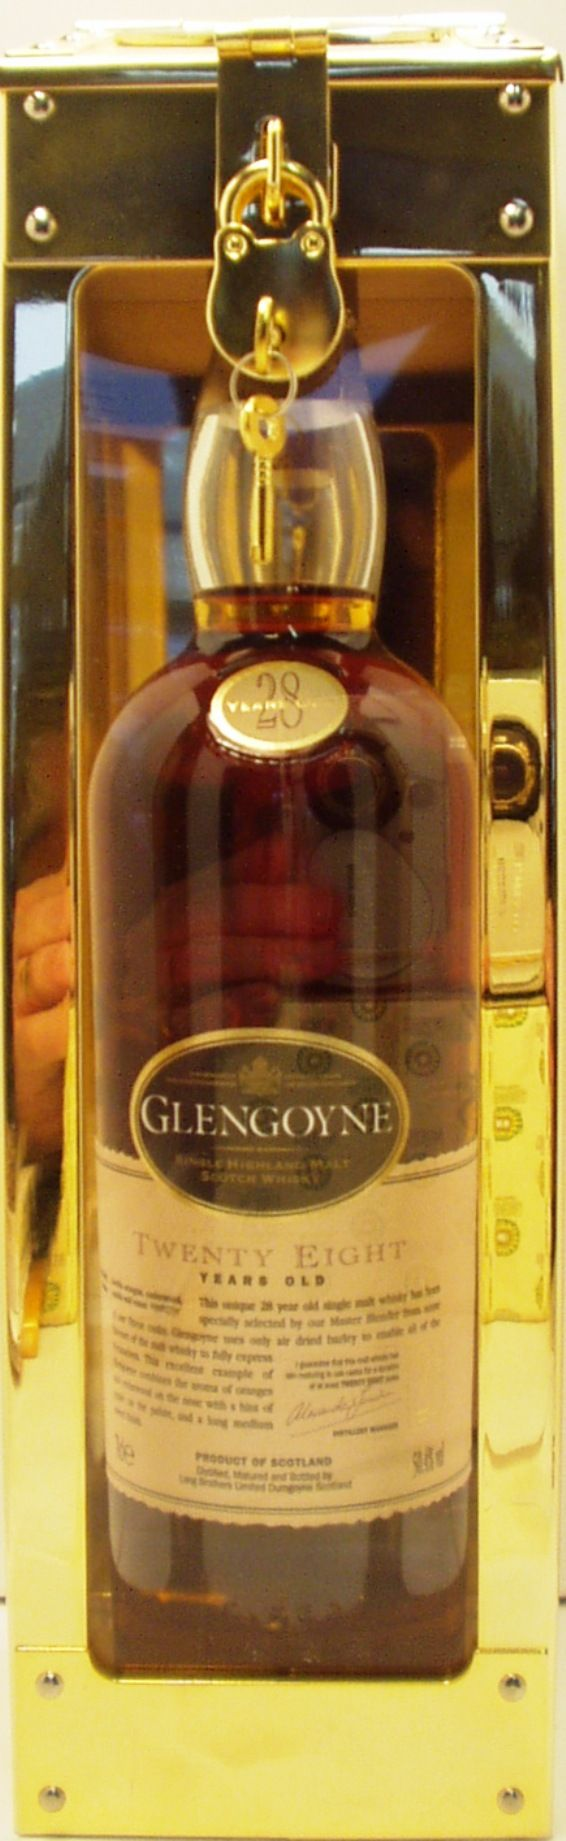 Glengoyne 28 year old Highland Scotch Whisky in a spirit safe style case